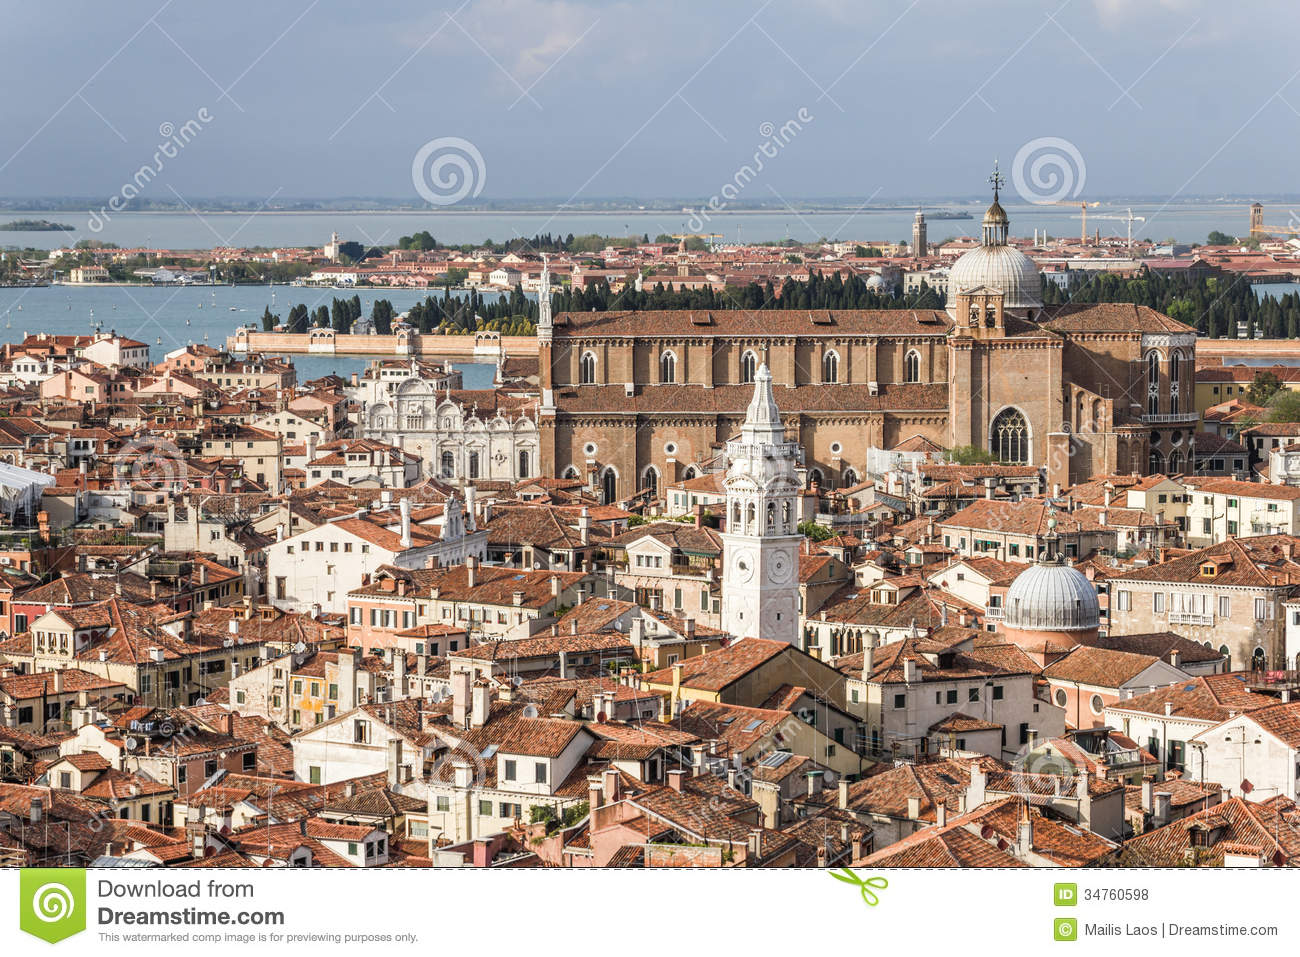 Download Venice Panorama stock photo. Image of viewpoint, culture - 34760598